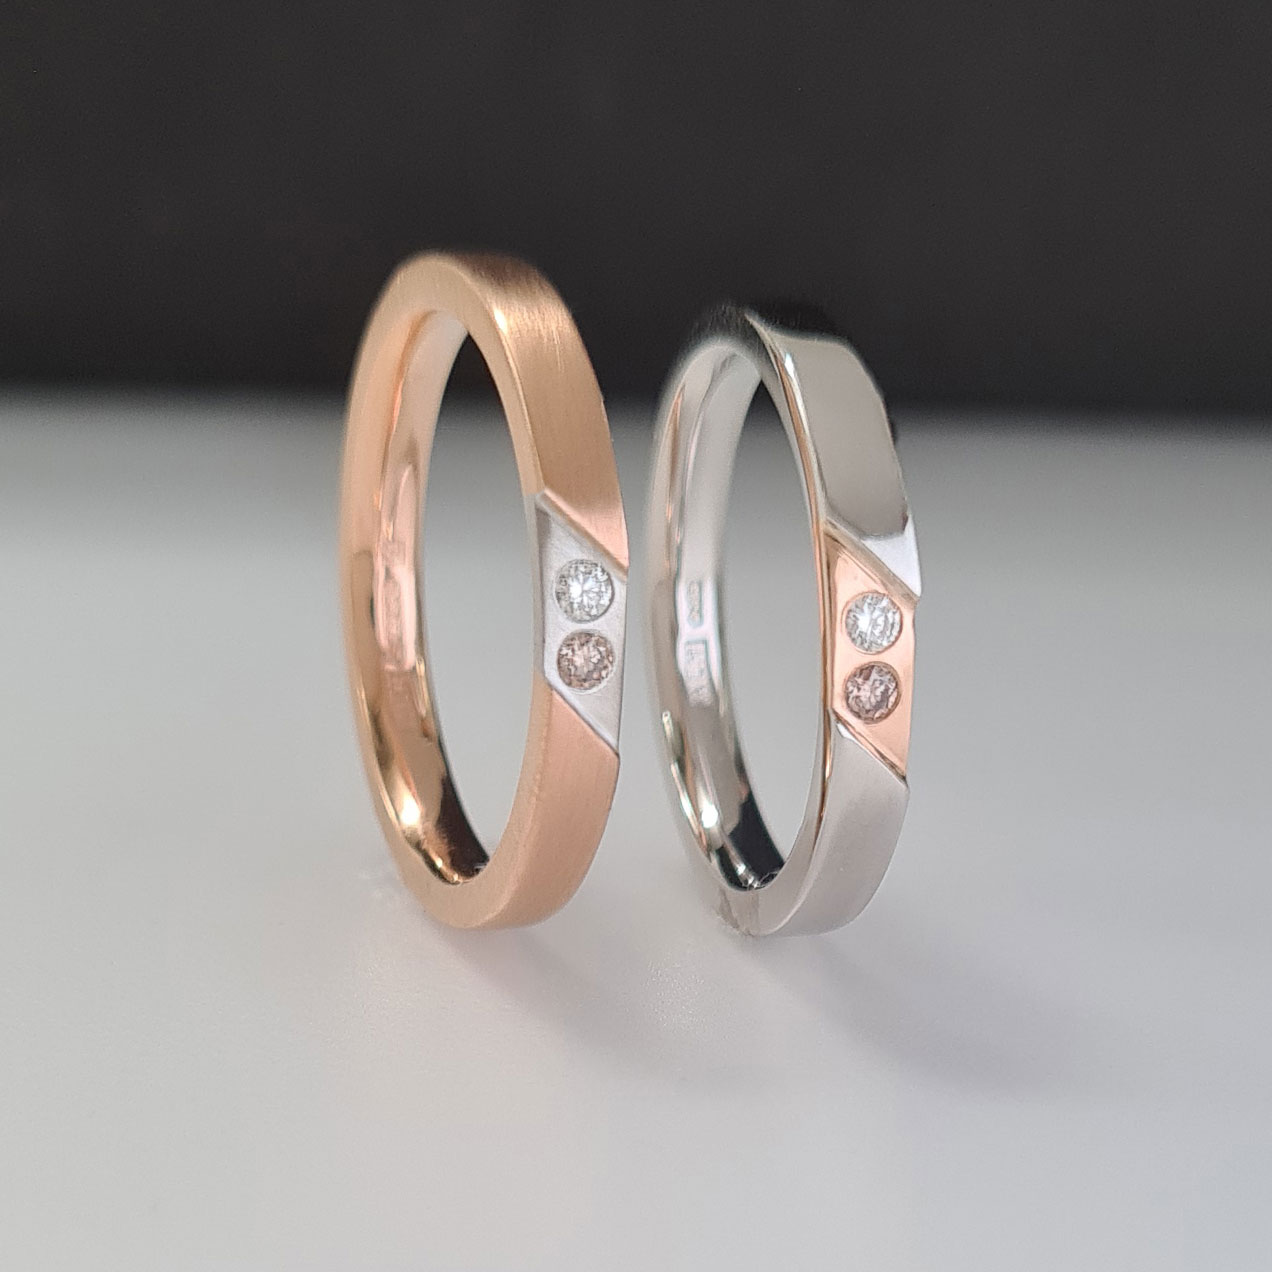 Two rings in rose gold and platinum with inset colourless and champagne diamonds standing upright on a black and white background.